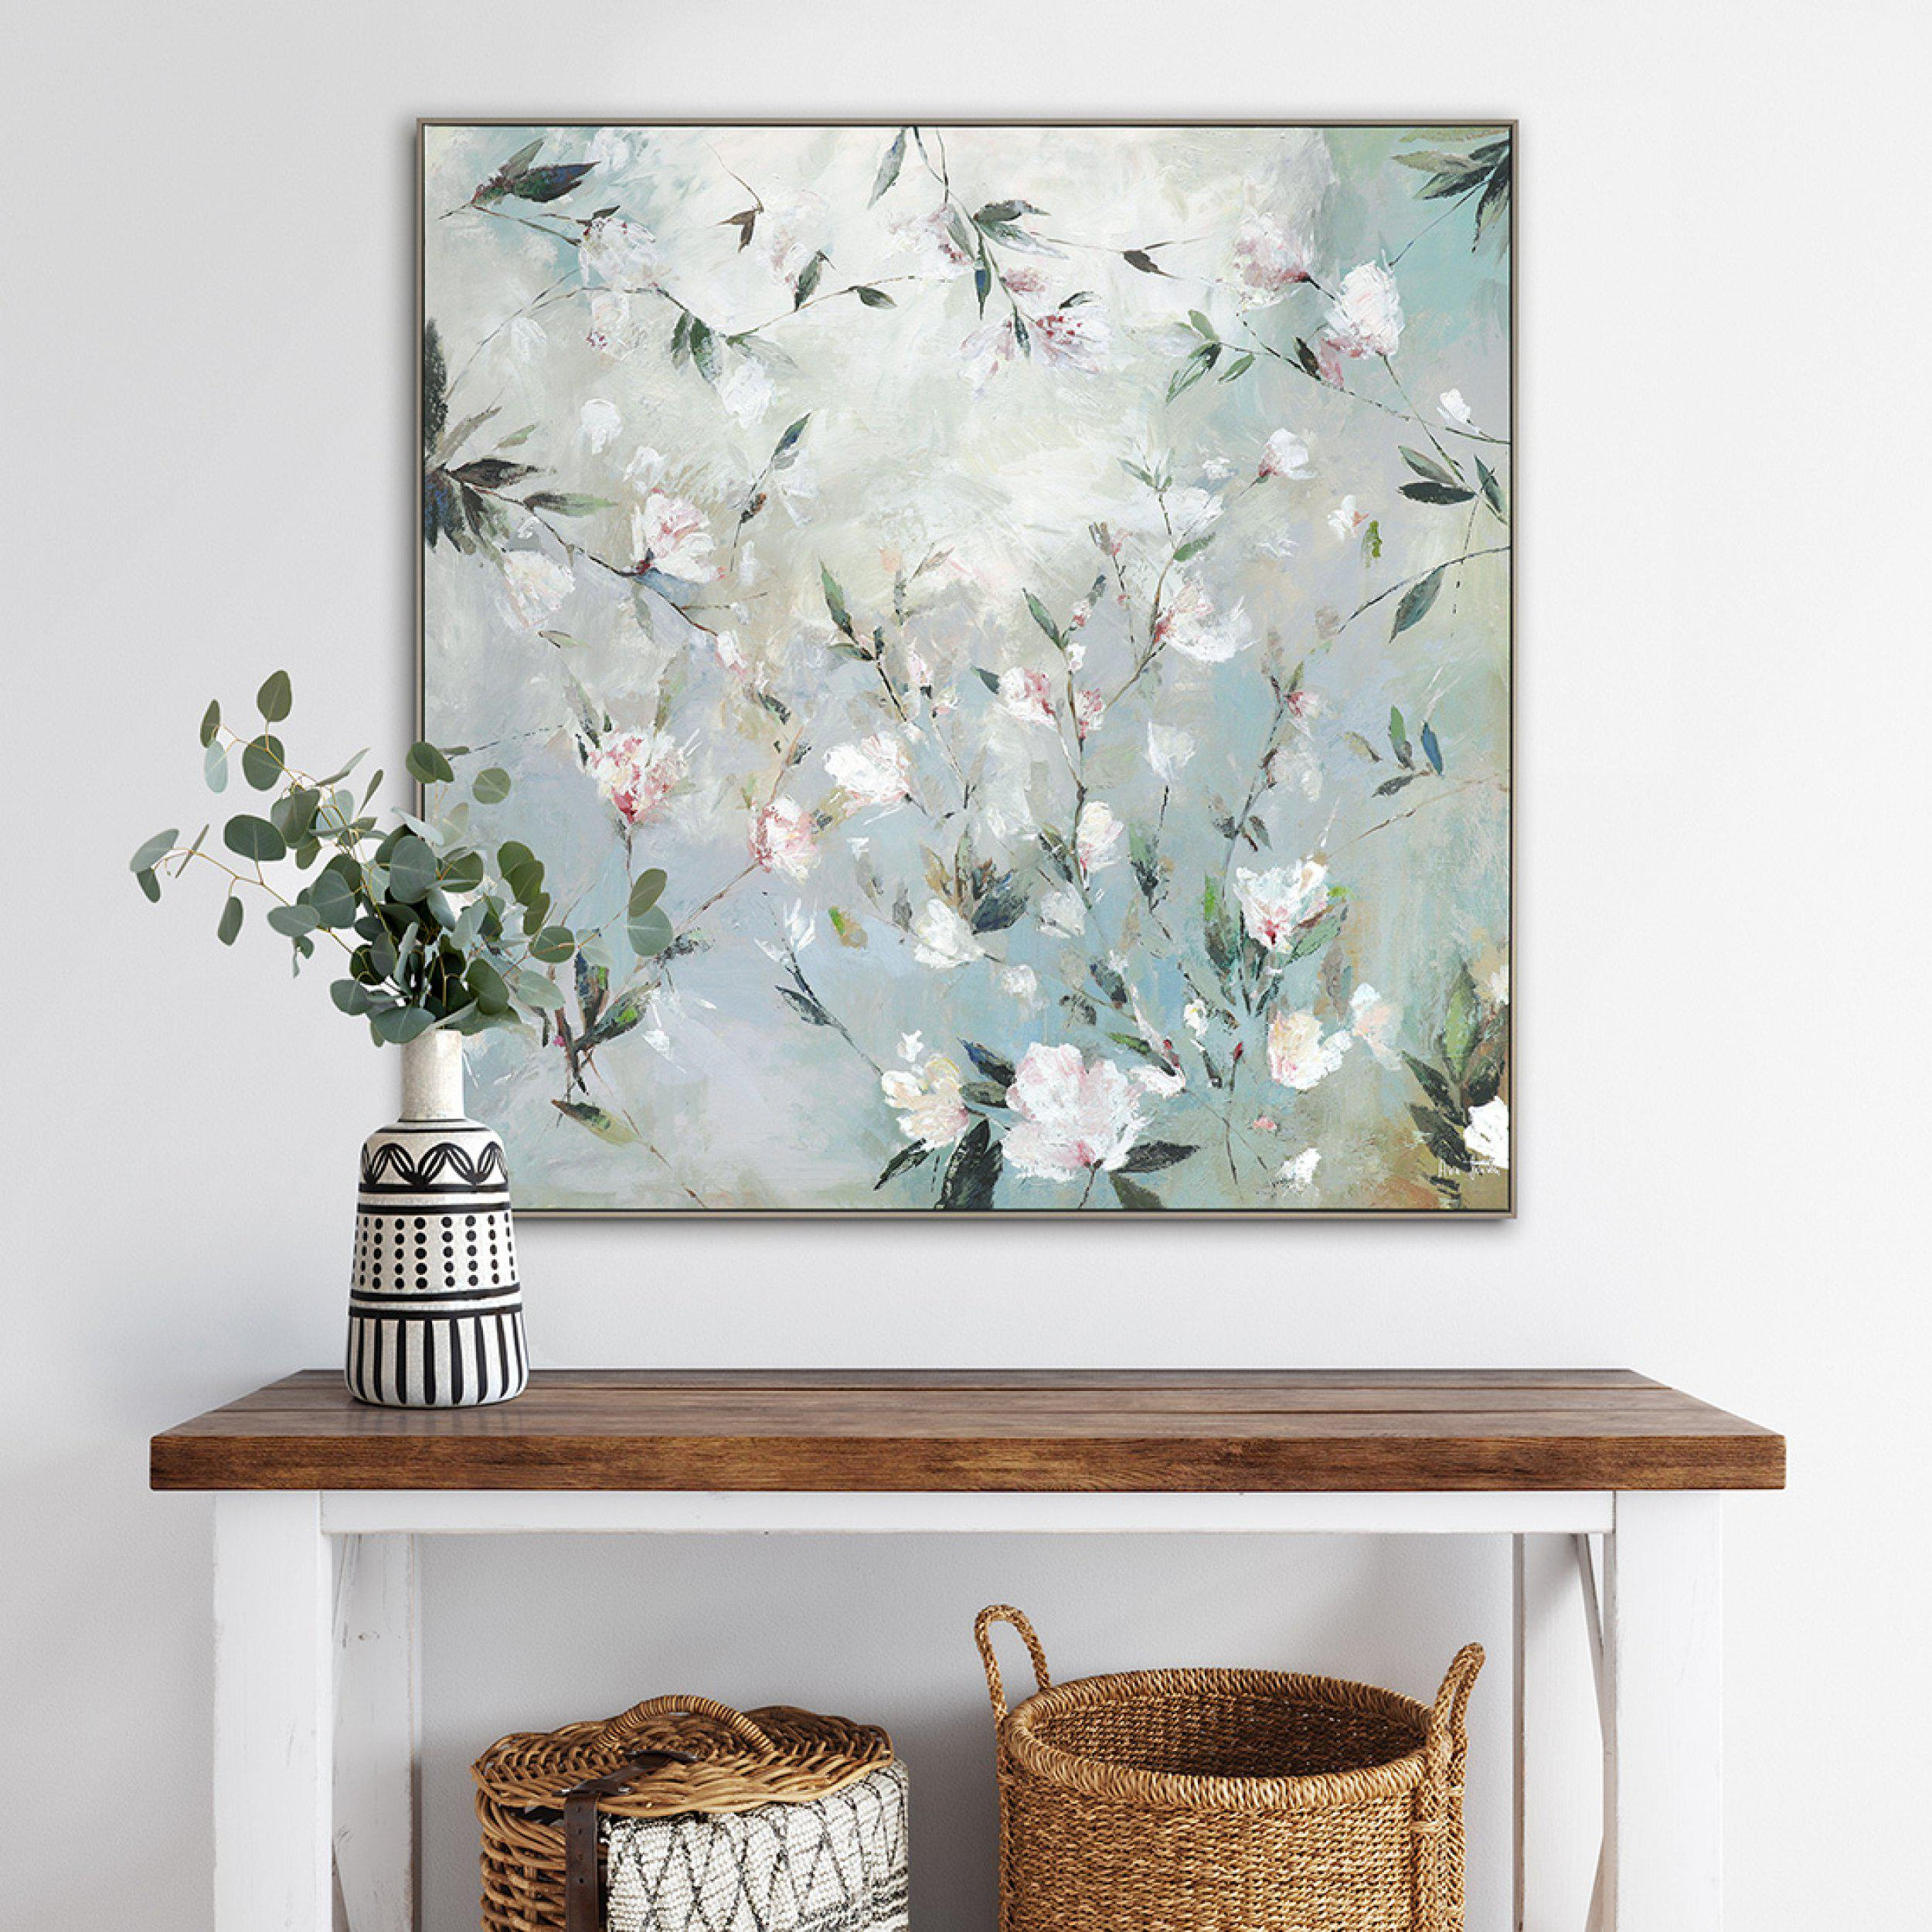 Confetti - Tree Blossom Painting by Artists PI Creative Art - Framed Print For Sale - Room Display